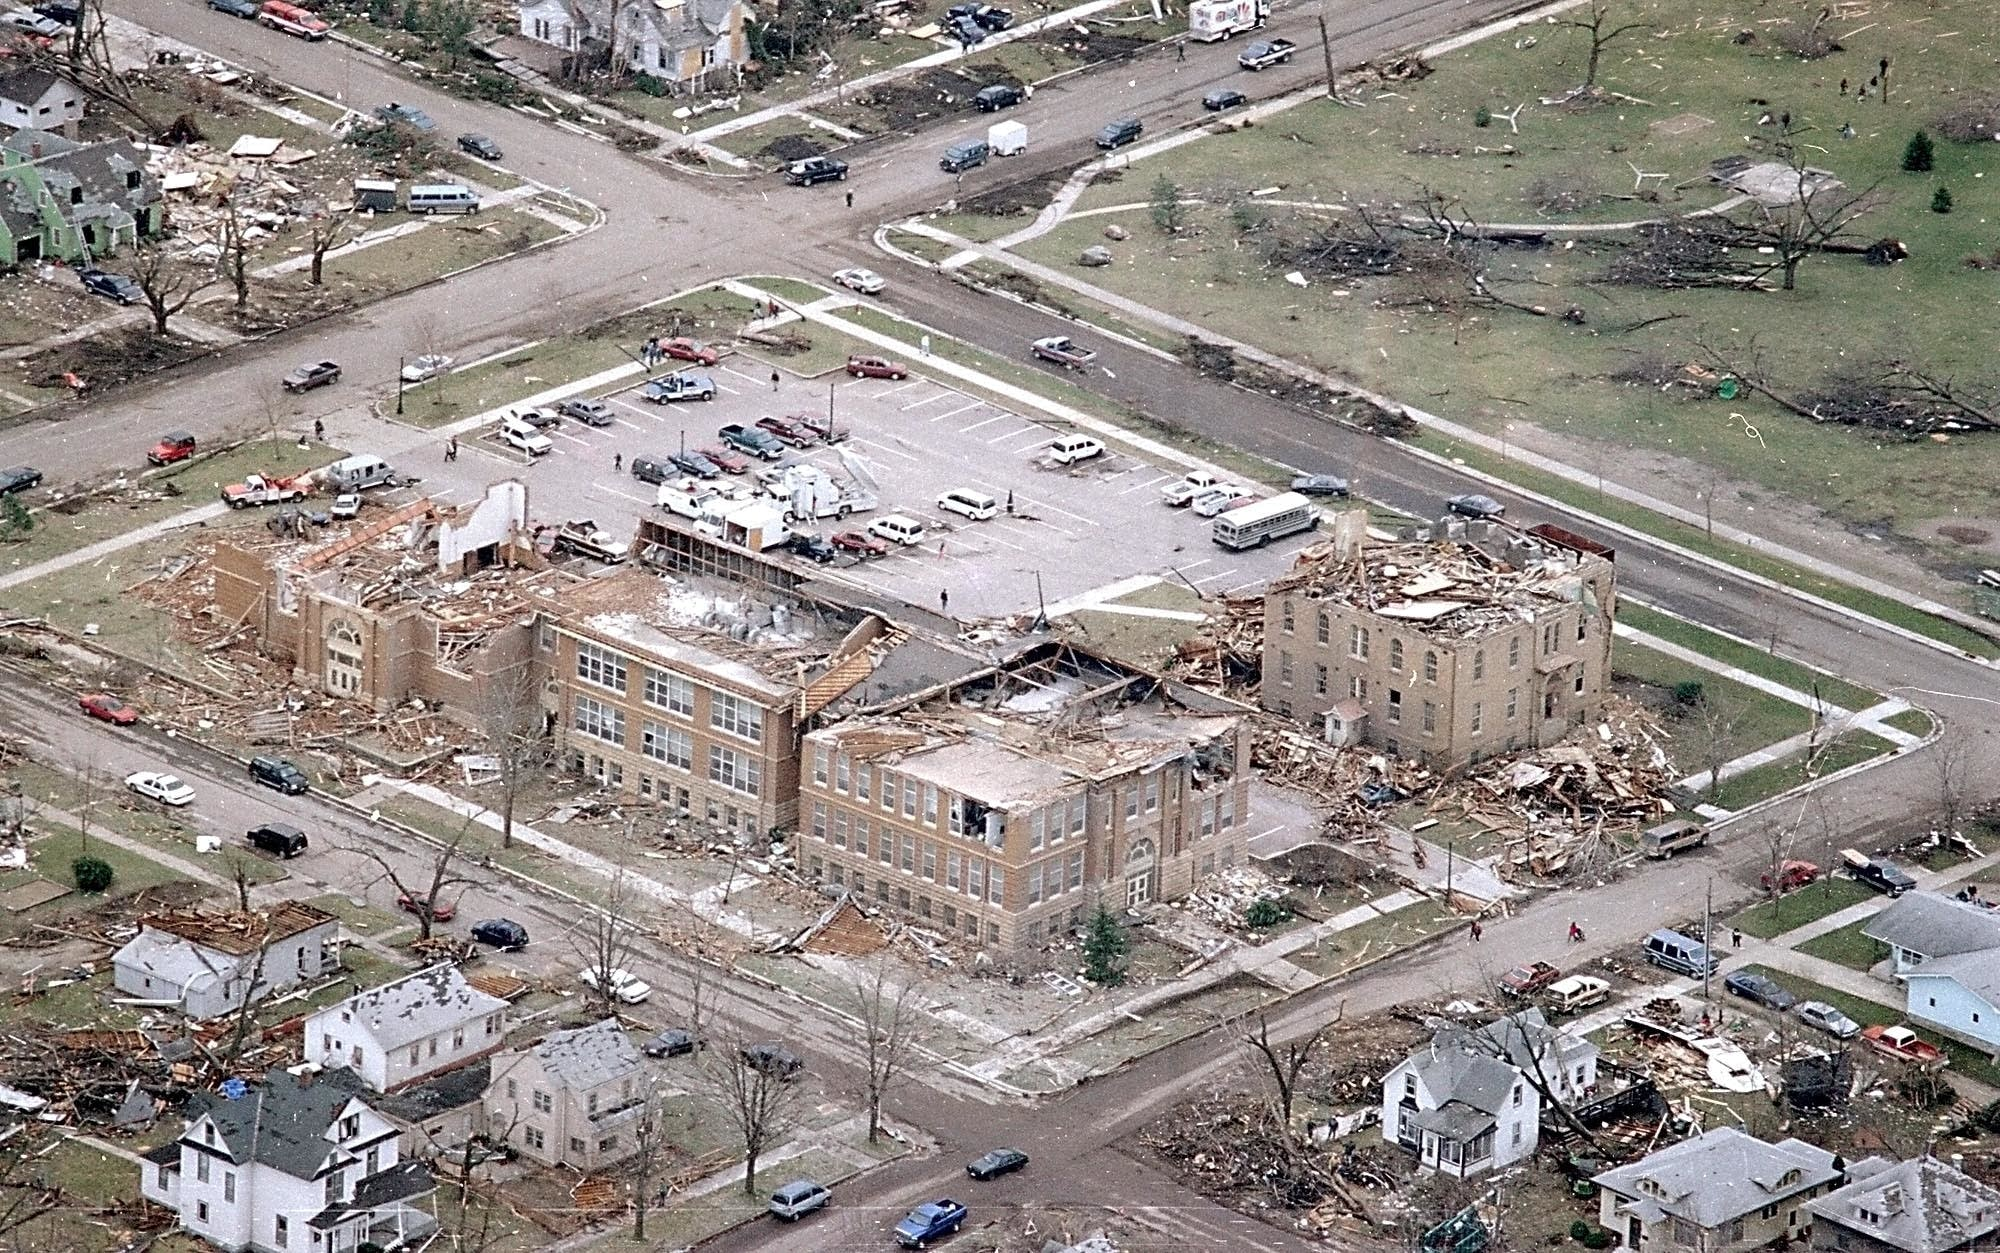 The St. Peter Arts and Heritage Center after the tornado.